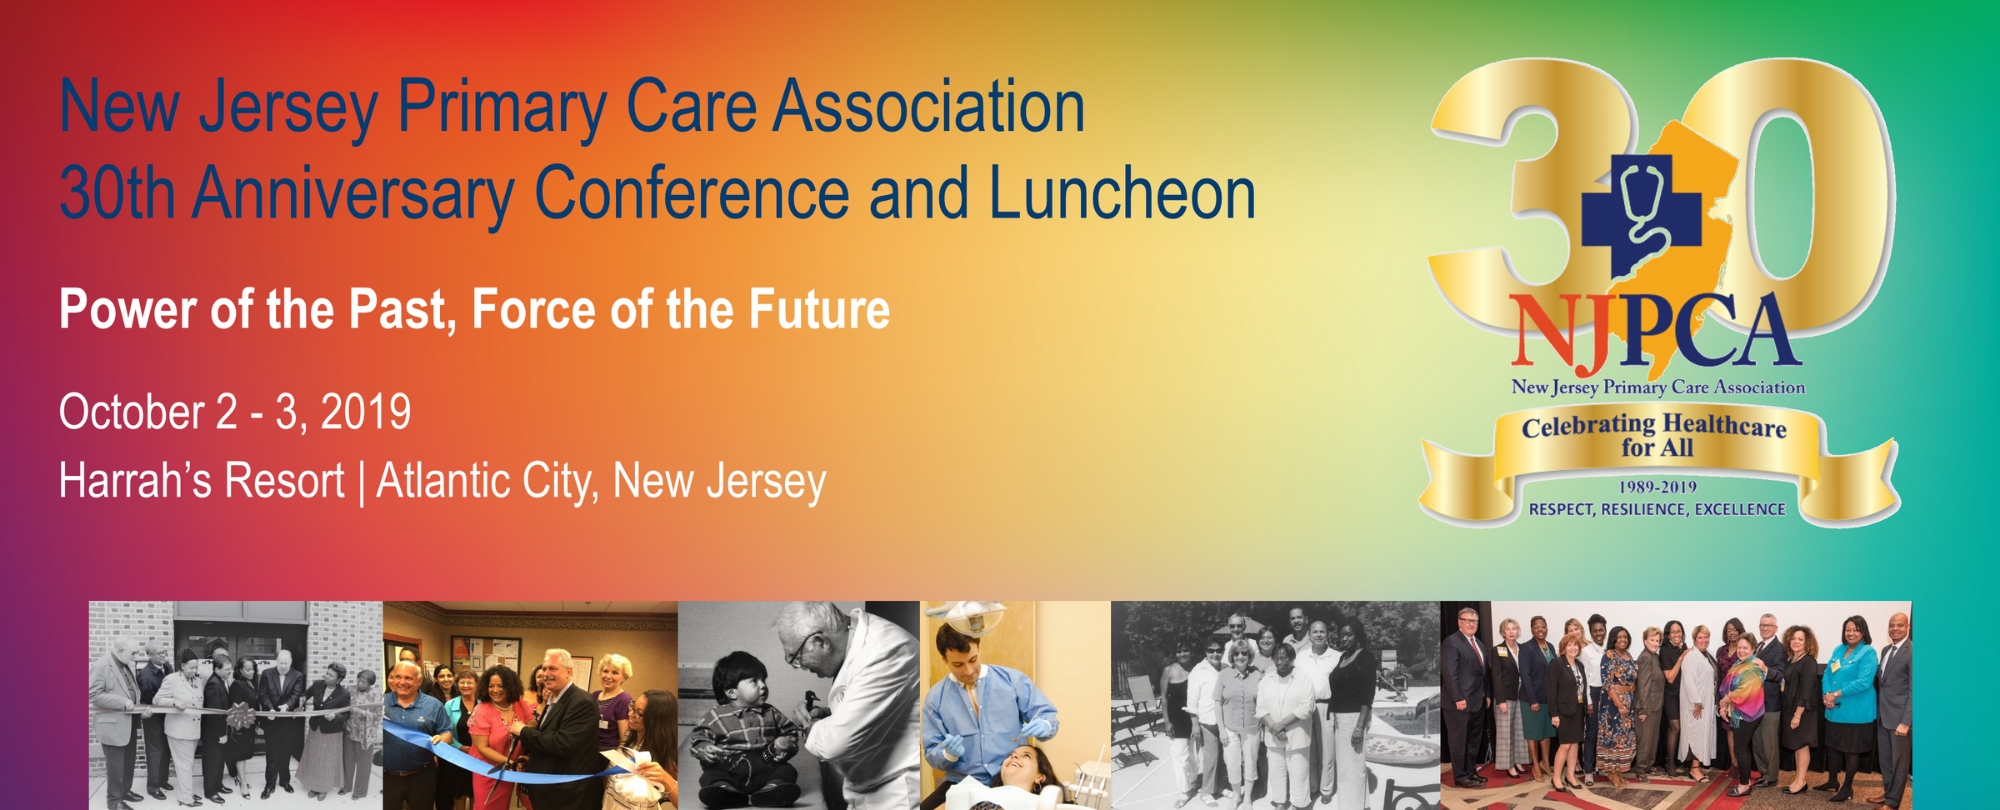 NJPCA - New Jersey Primary Care Association - Home